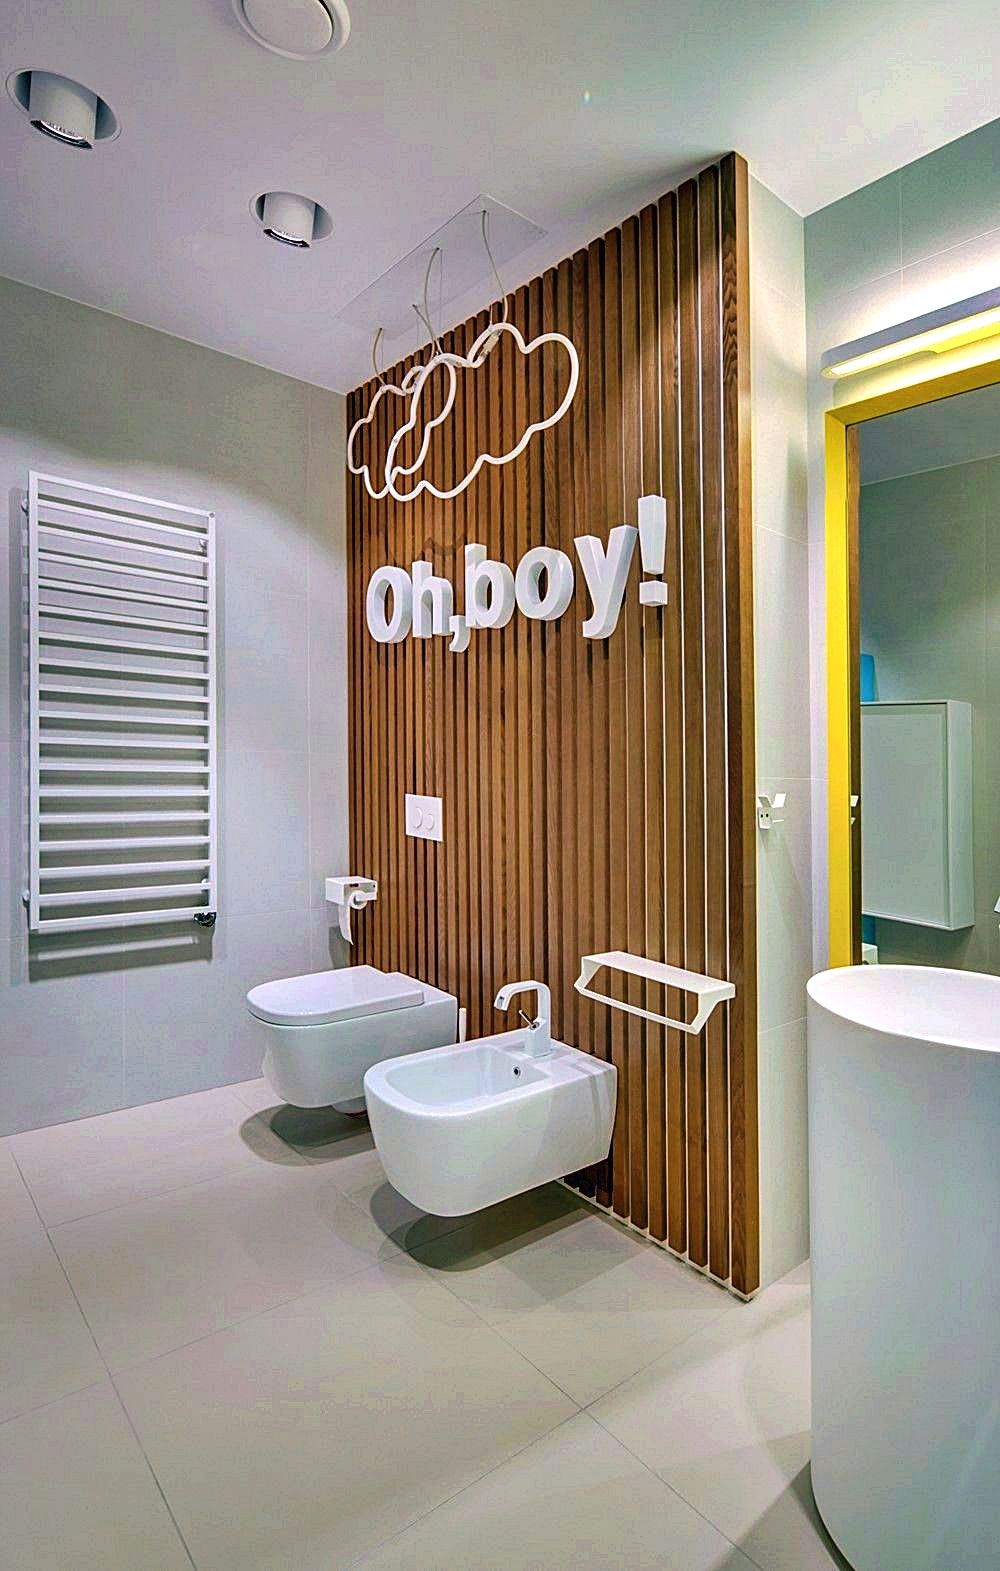 Beau Bathroom Themes Ideas Try Some Recycled Materials For The Green Bathroom  Design. These Salvaged Materials